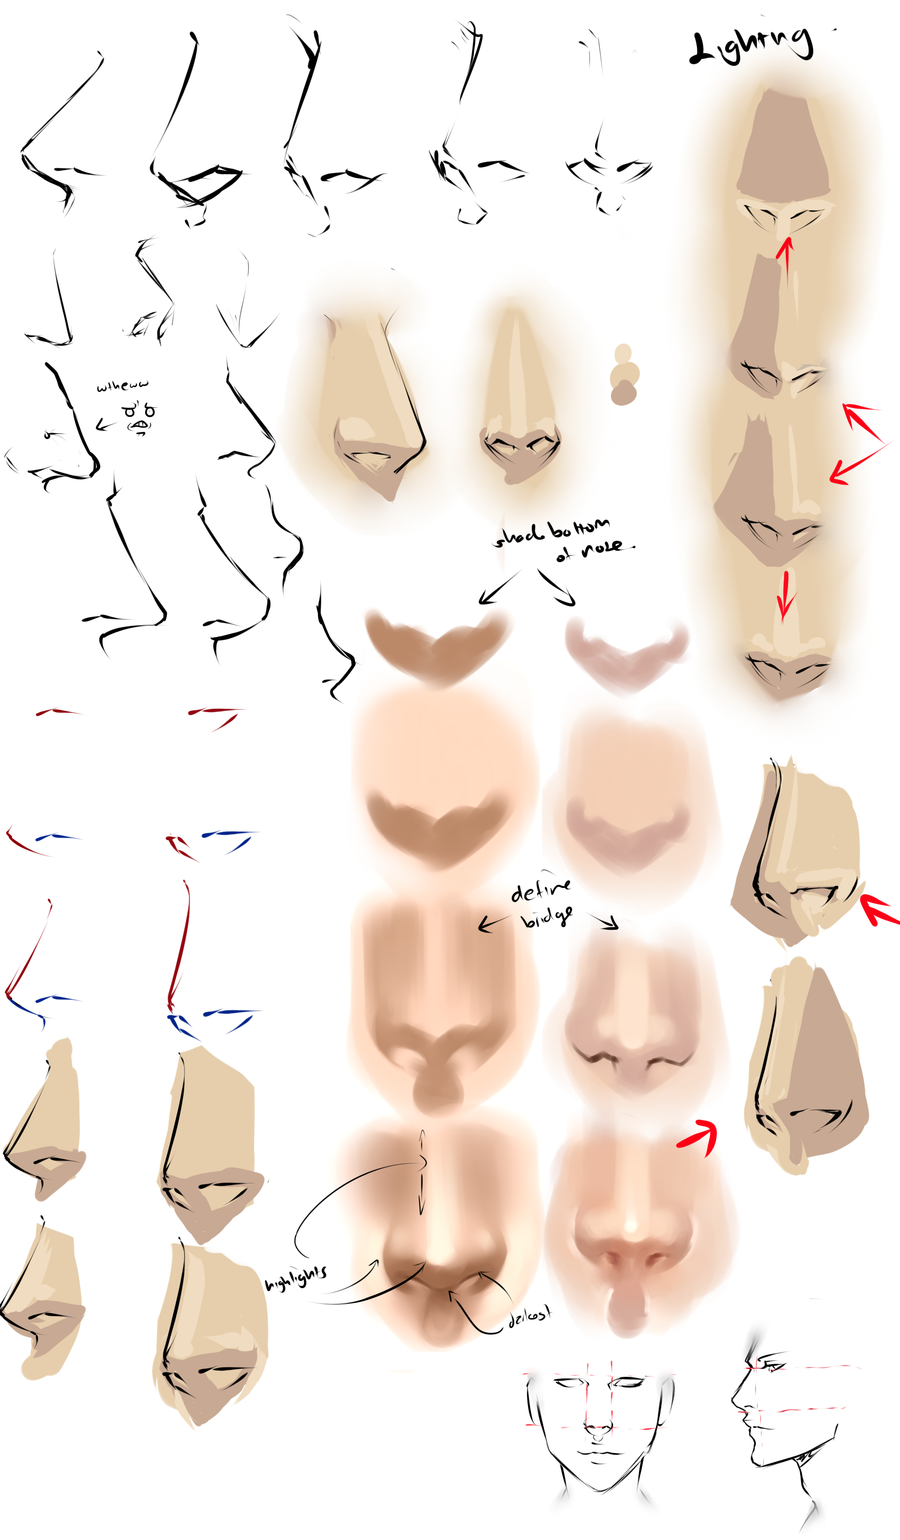 Drawing Anime Noses By Moni158 On Deviantart Nose Drawing Anime Nose Drawing Tutorial